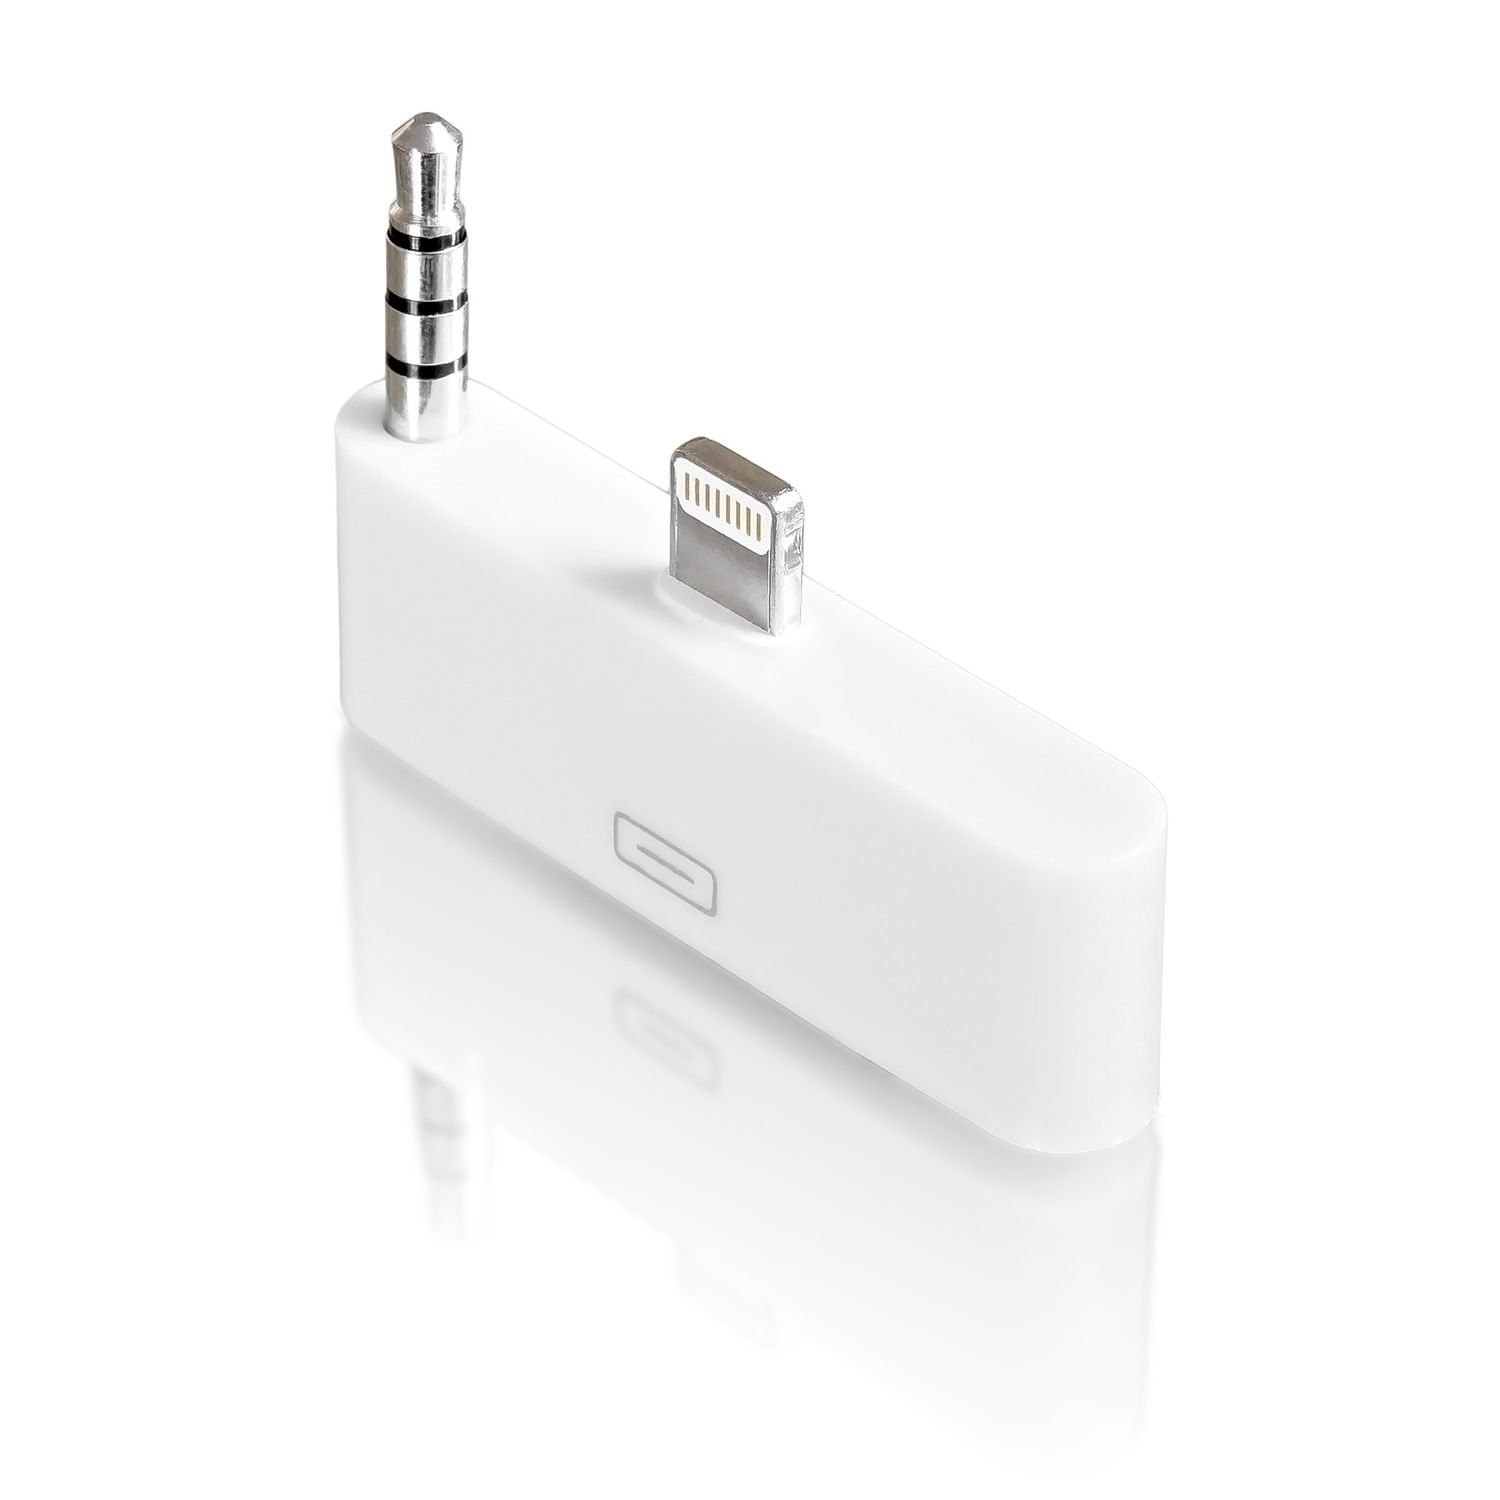 iphone usb drive adapter audio stecker nica 30pin anschluss zu 8pin 1857